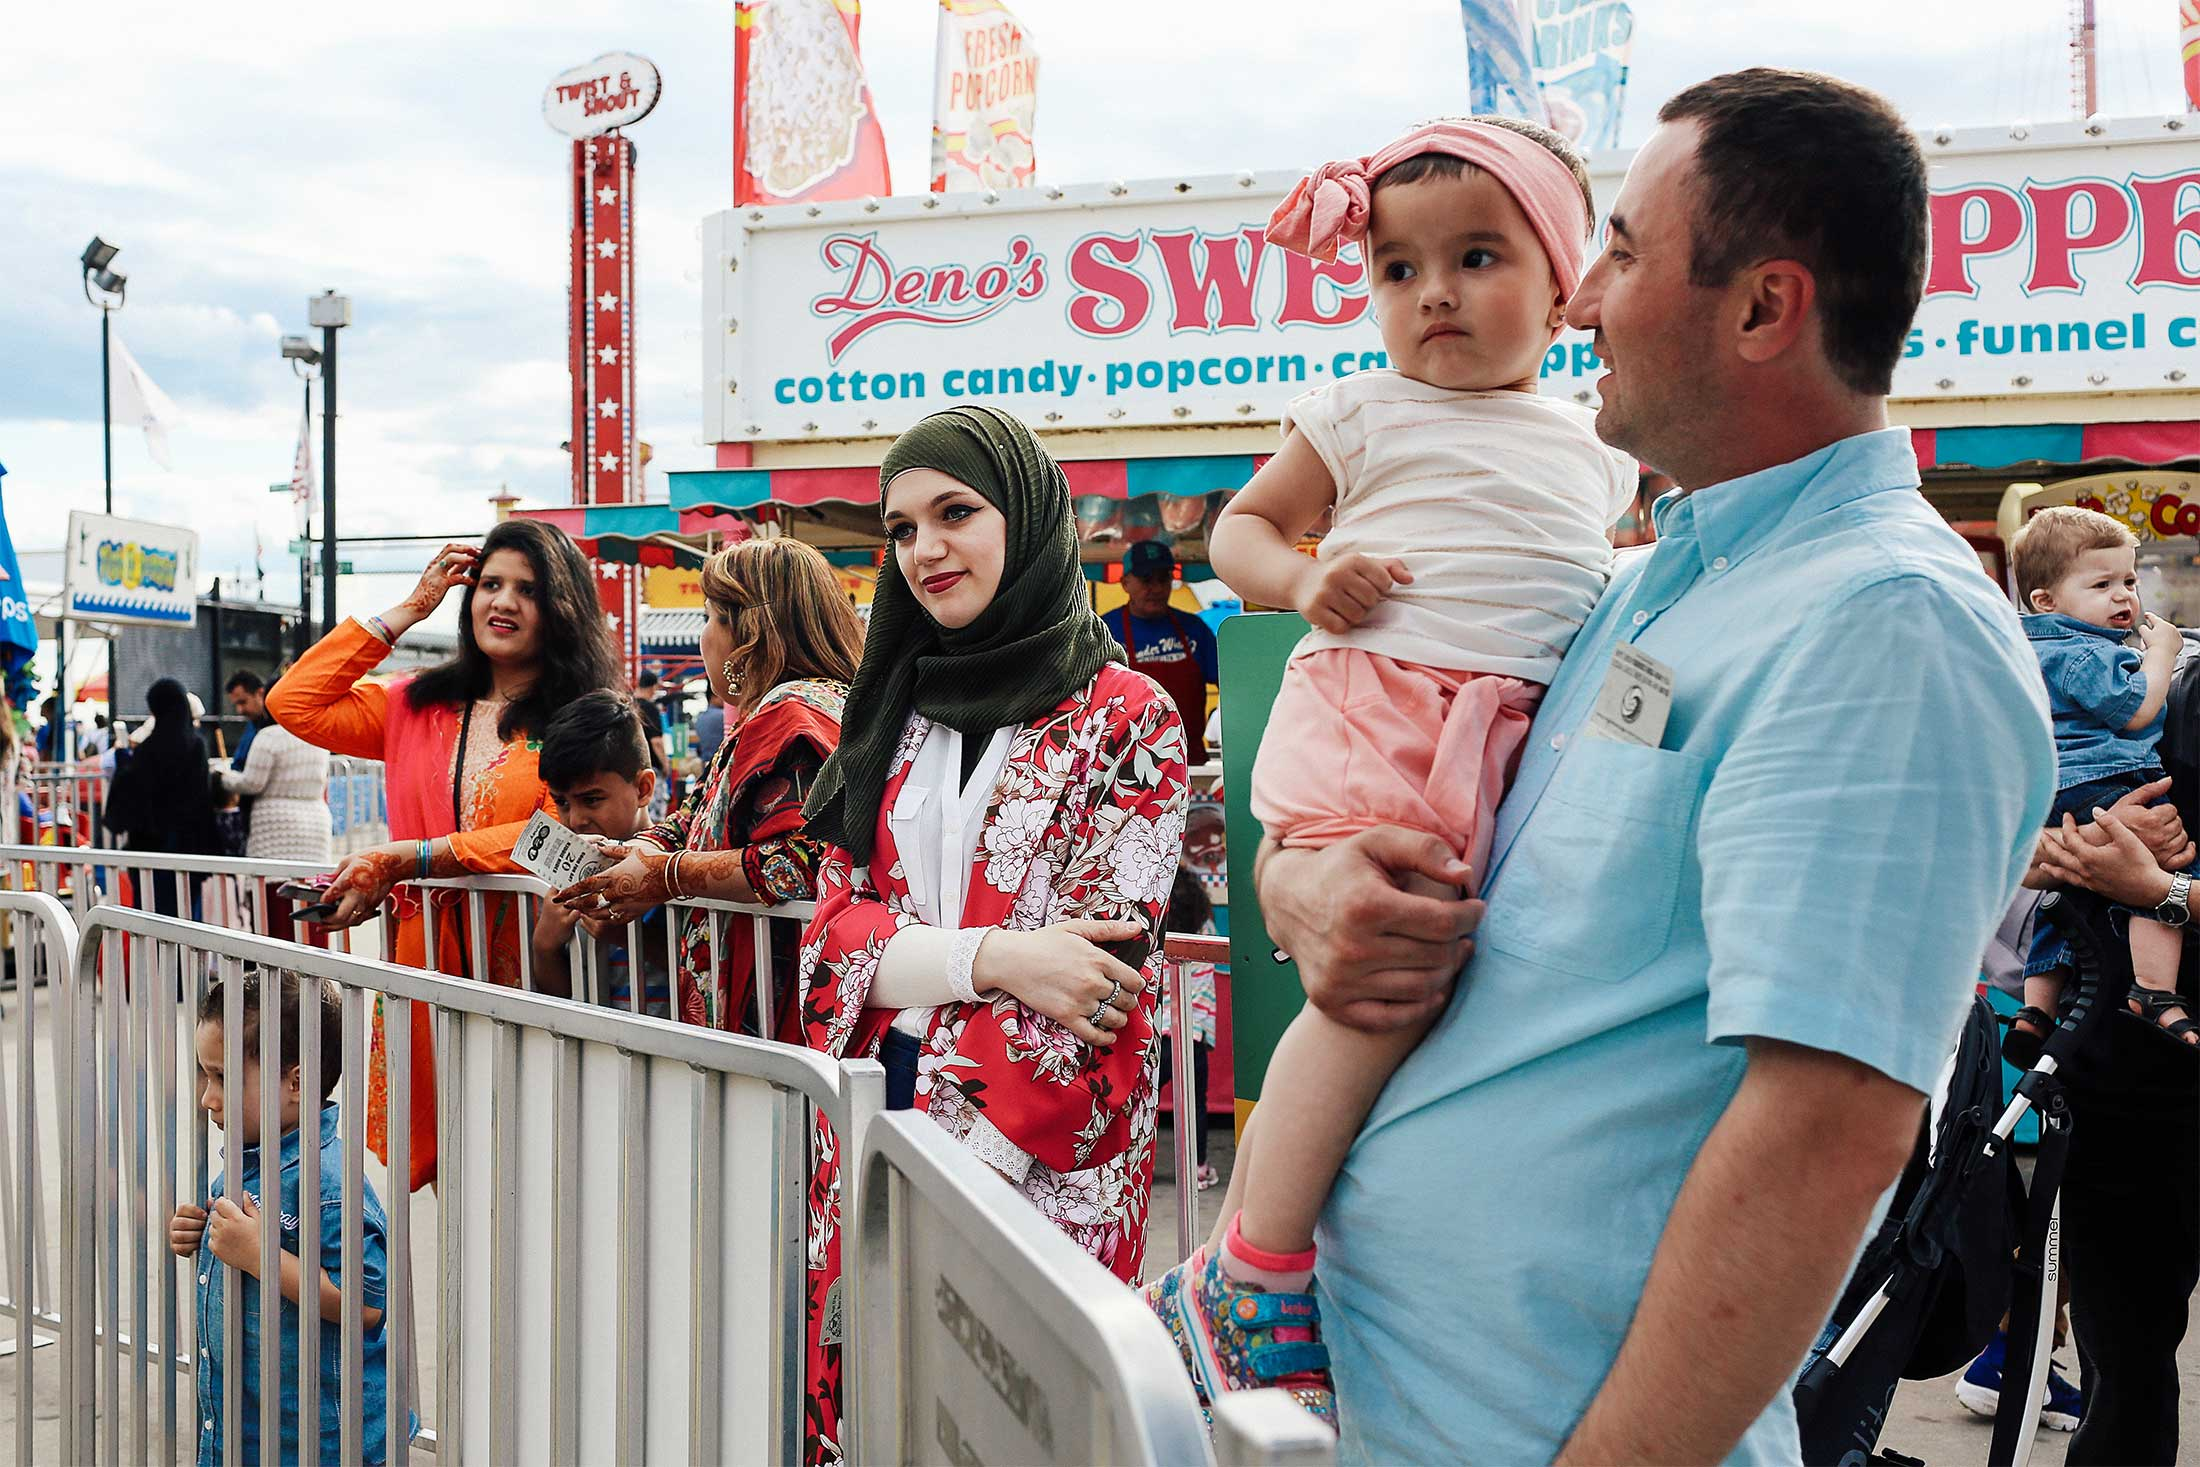 Muslim families celebrate Eid al-Fitr at Luna Park in Coney Island.